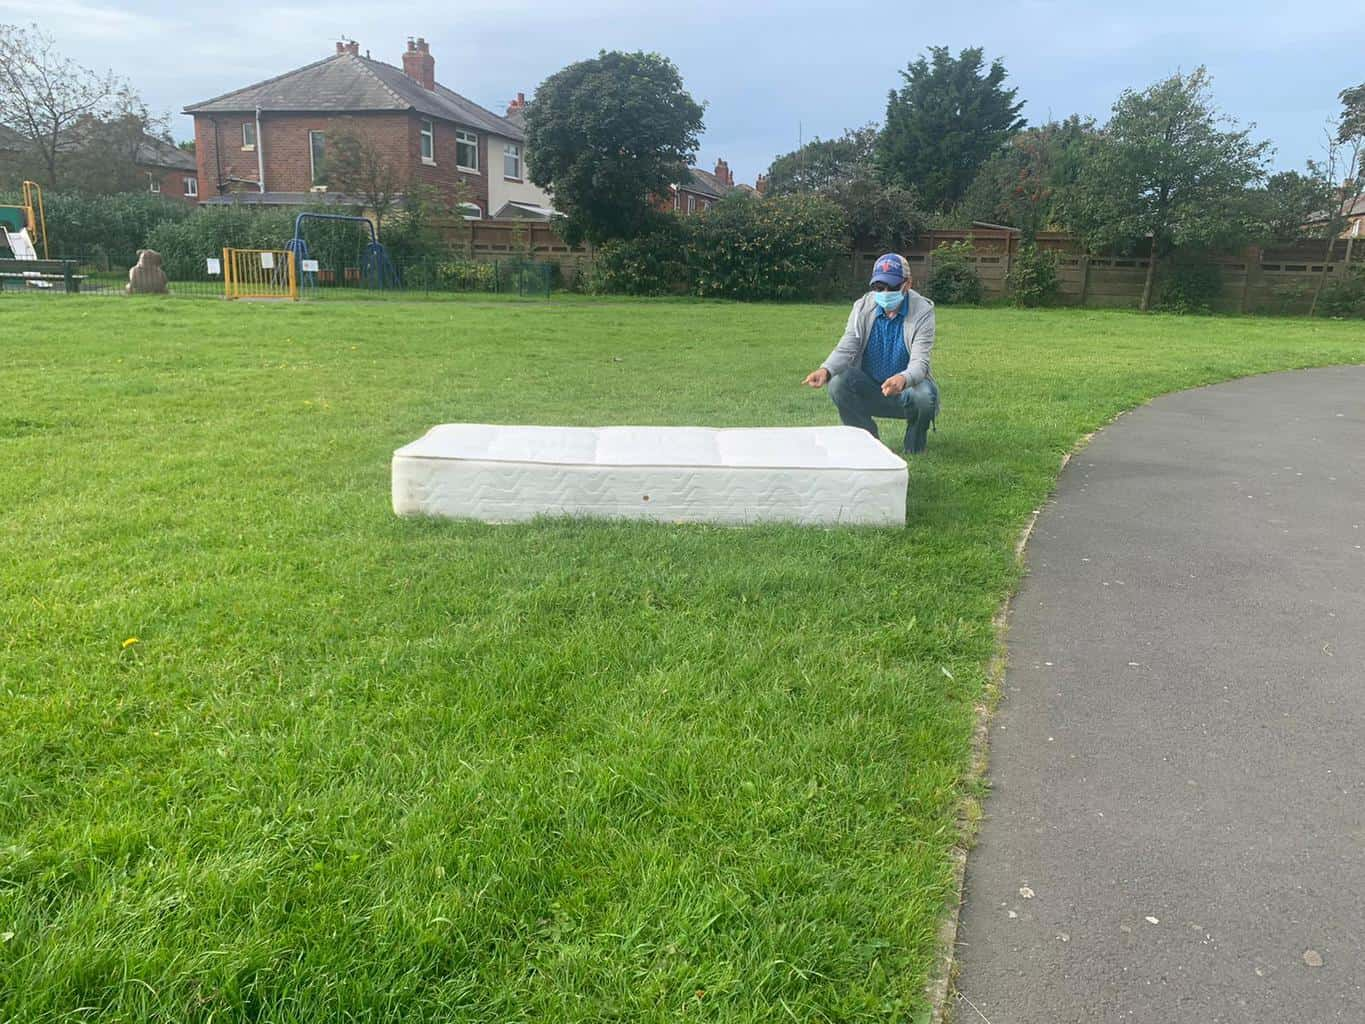 Urine stained mattress dumped on local playing field, just metres from children's play area